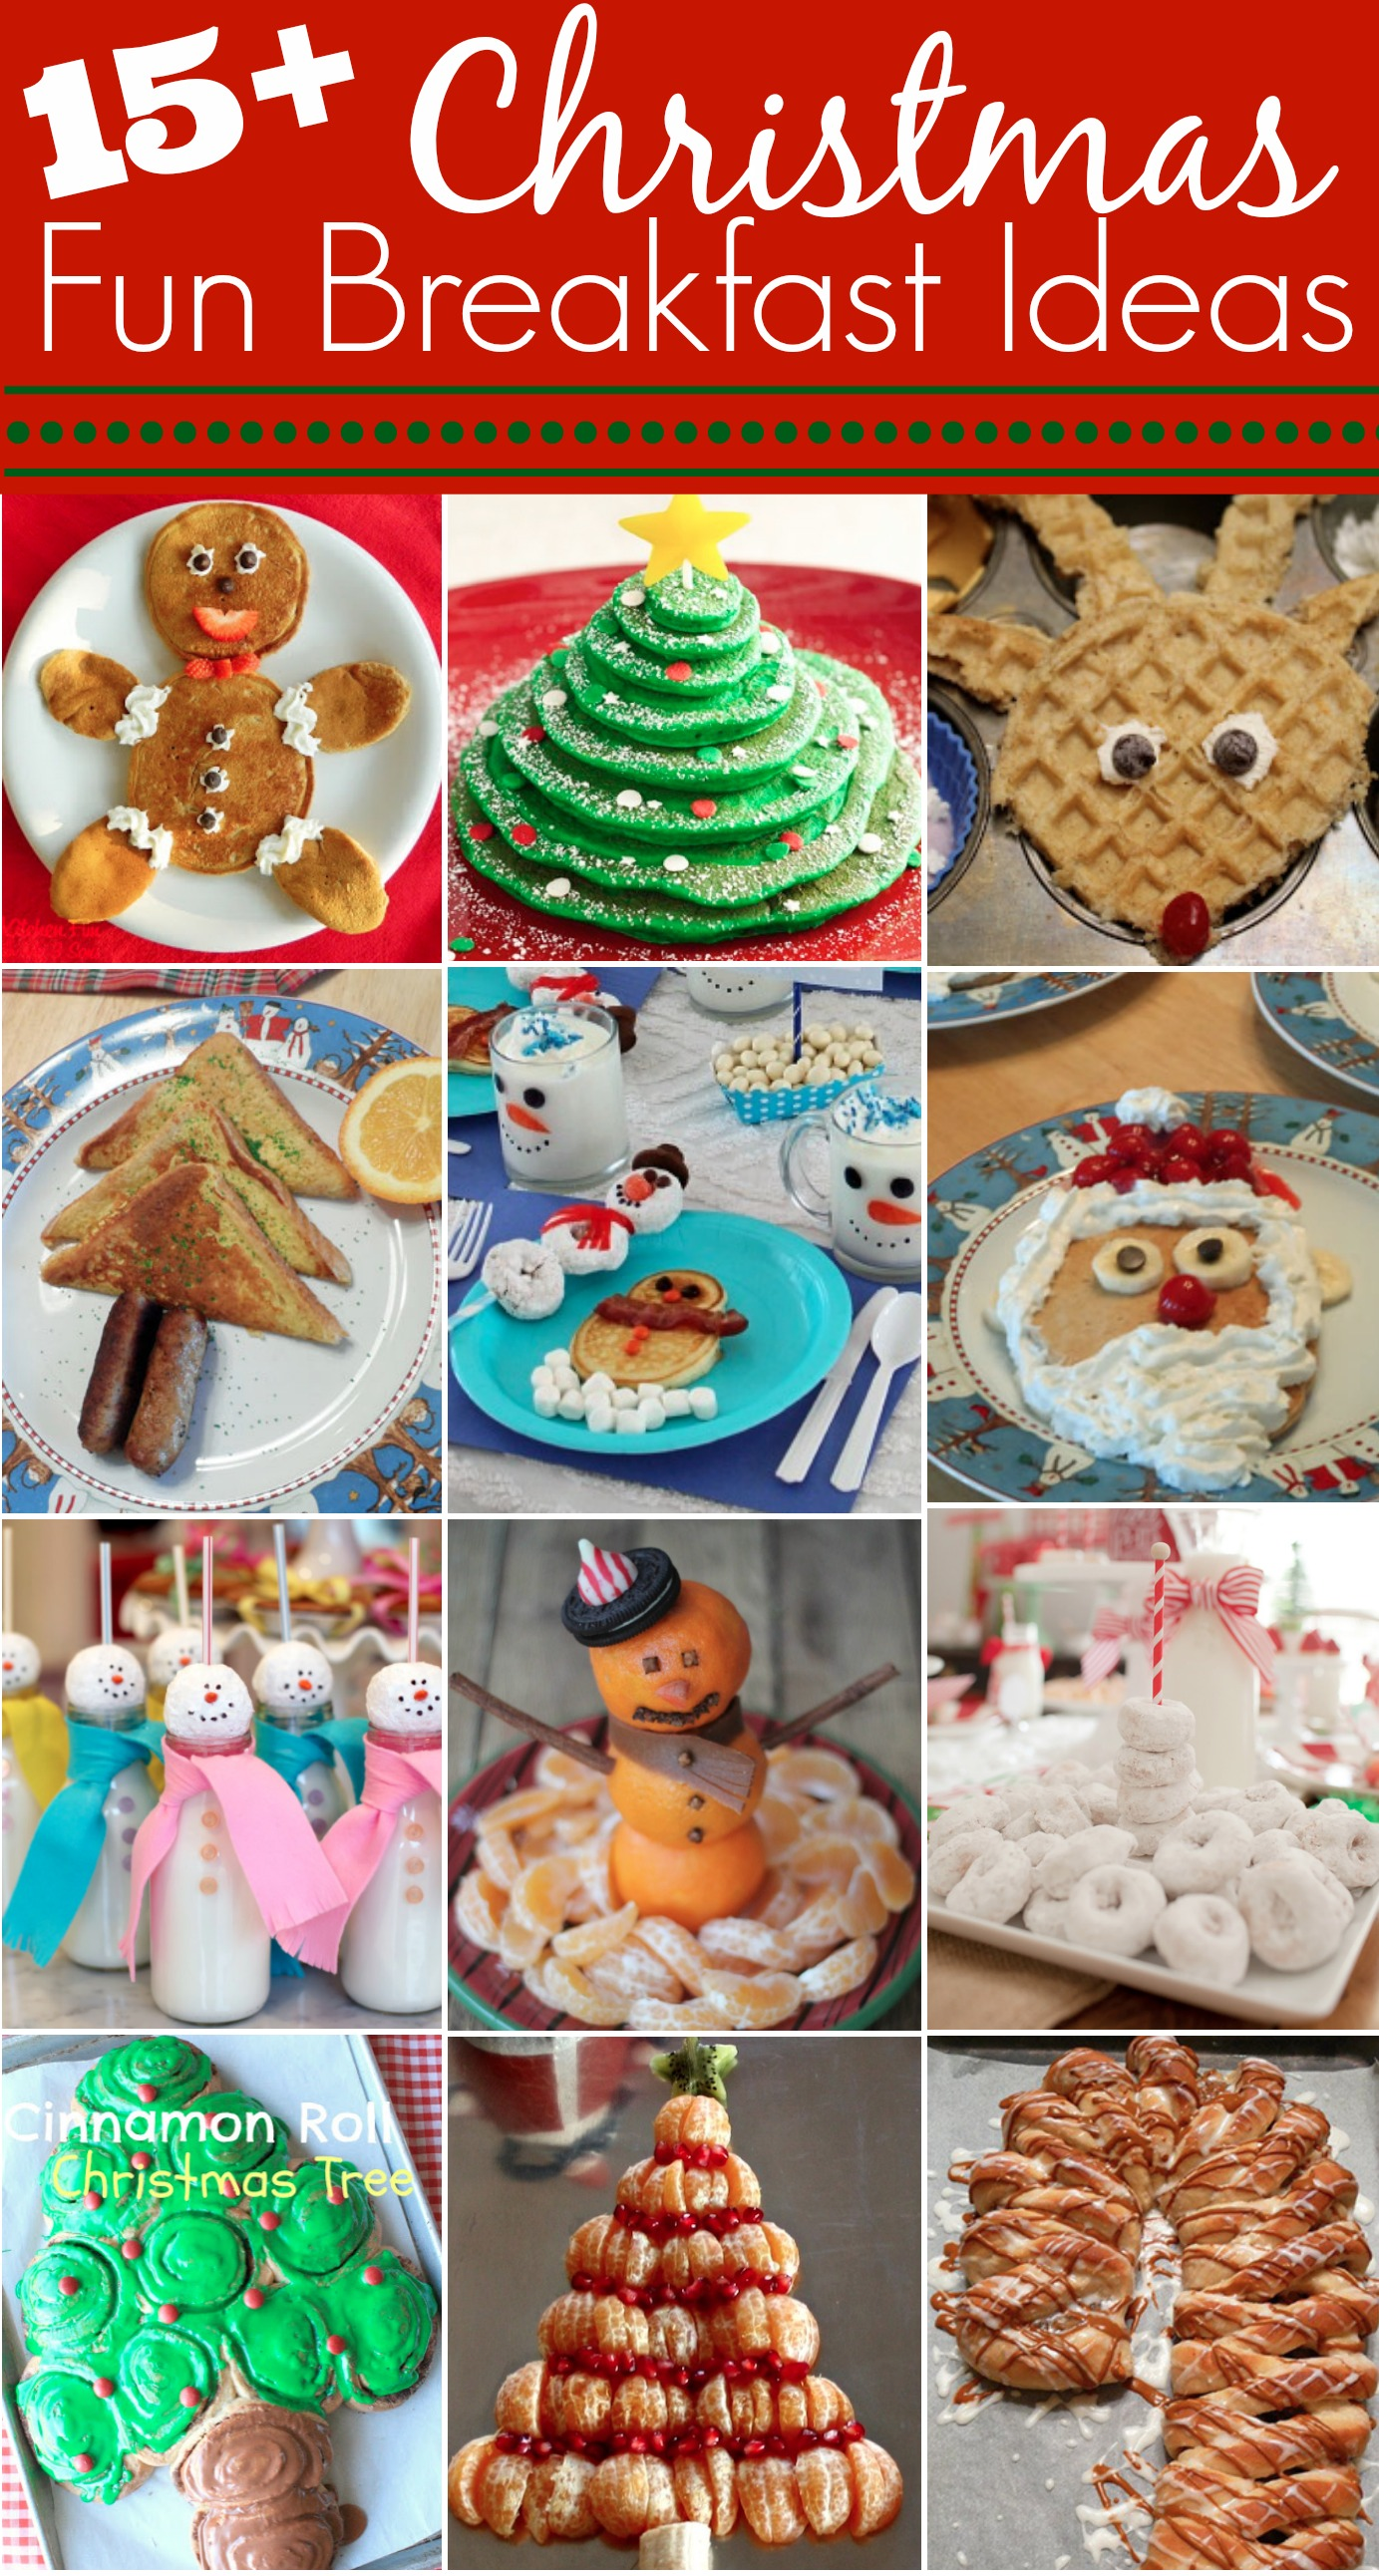 Fun Christmas Breakfast Ideas